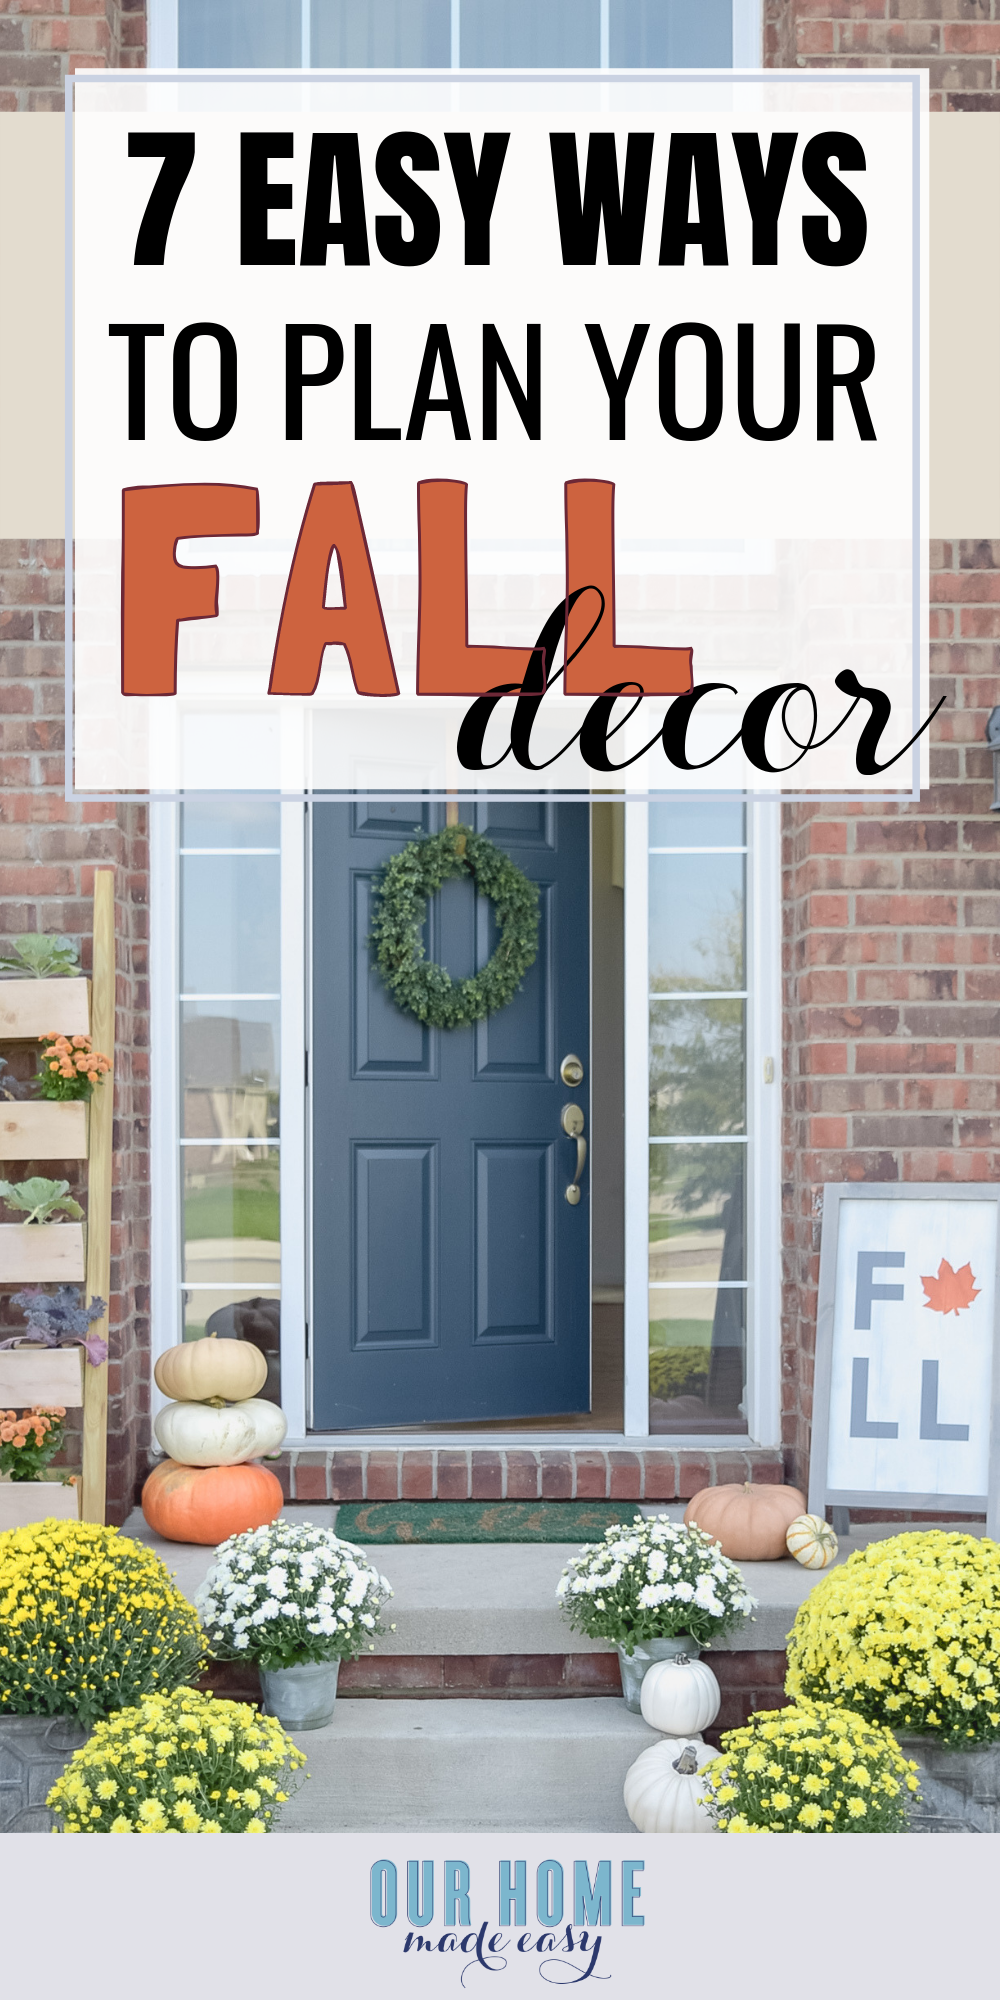 7 easy ways to plan your fall home decor